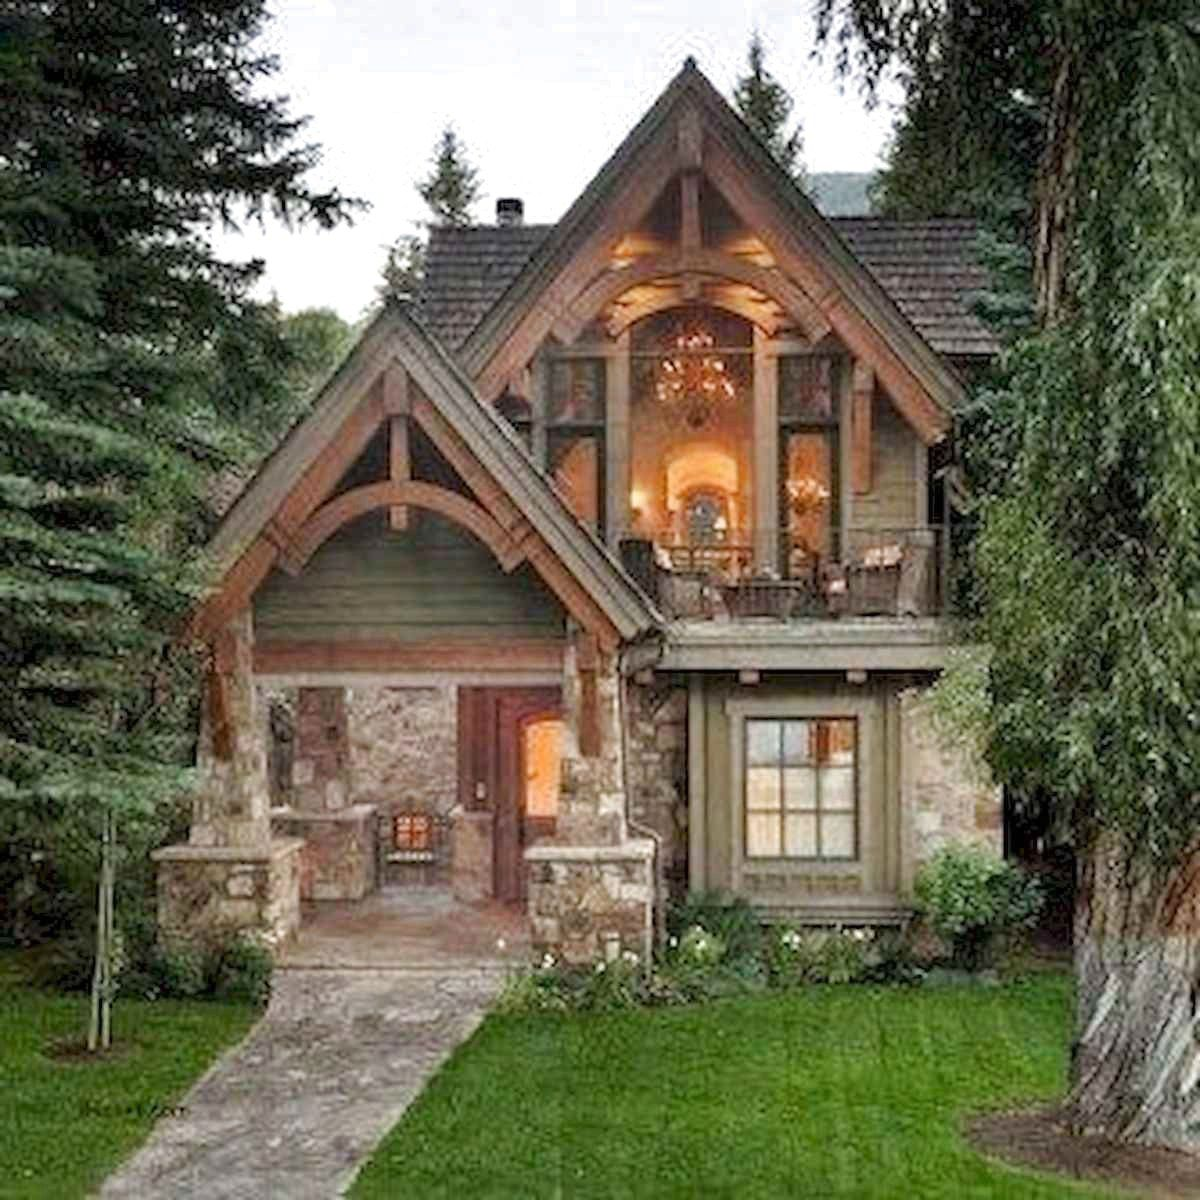 77 Favourite Log Cabin Homes Plans Design Ideas The Expert Beautiful Ideas Small Cottage House Plans Cottage House Exterior Small Cottage Homes